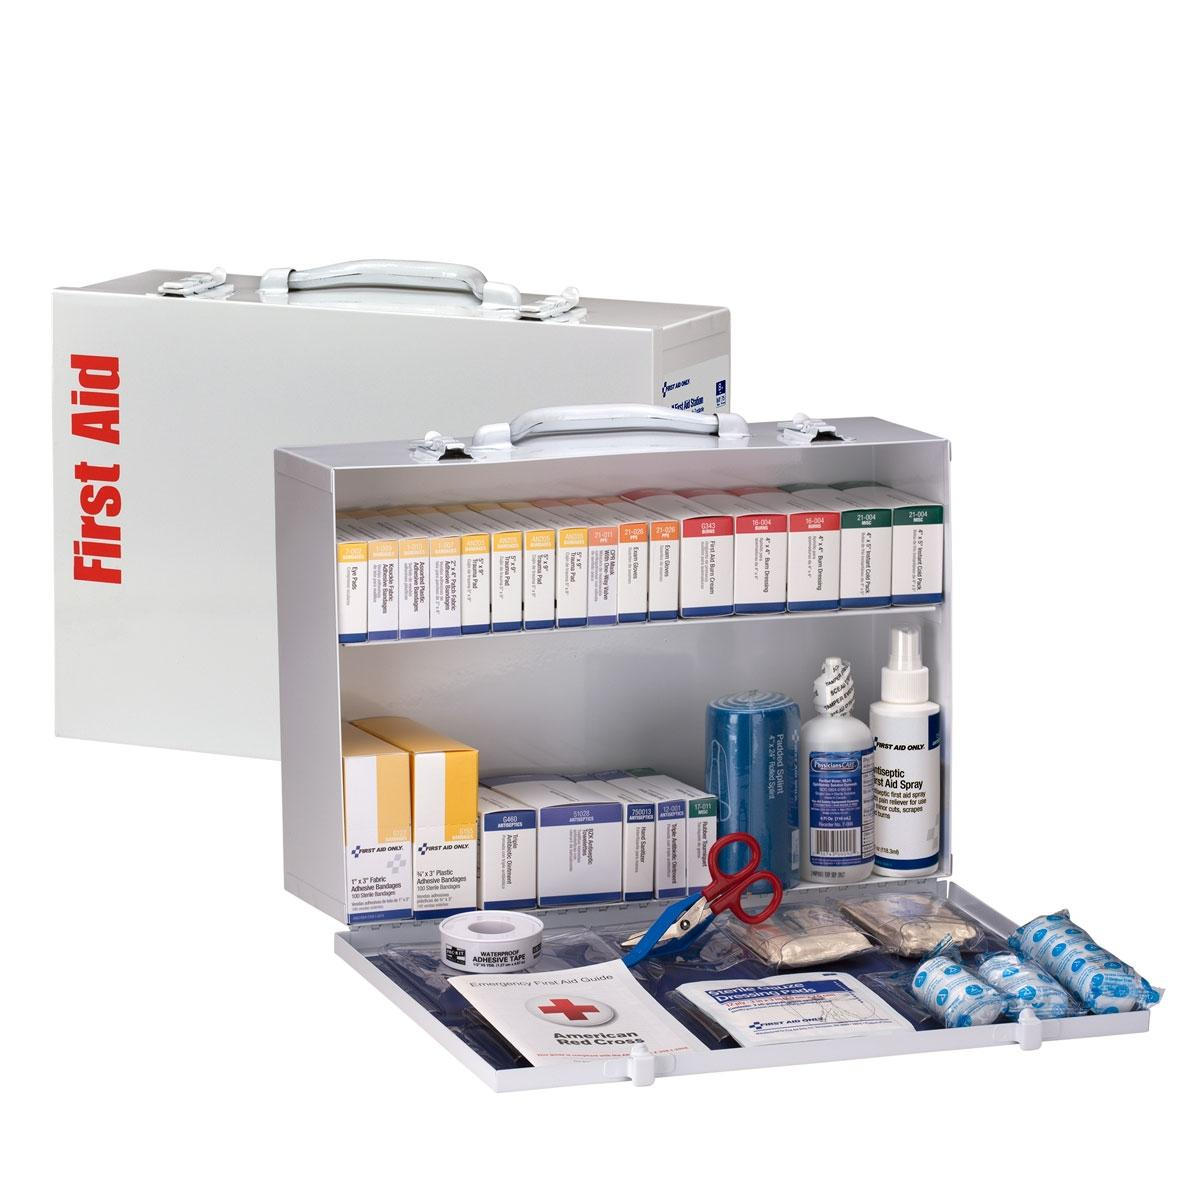 2 Shelf First Aid Cabinet, ANSI Compliant